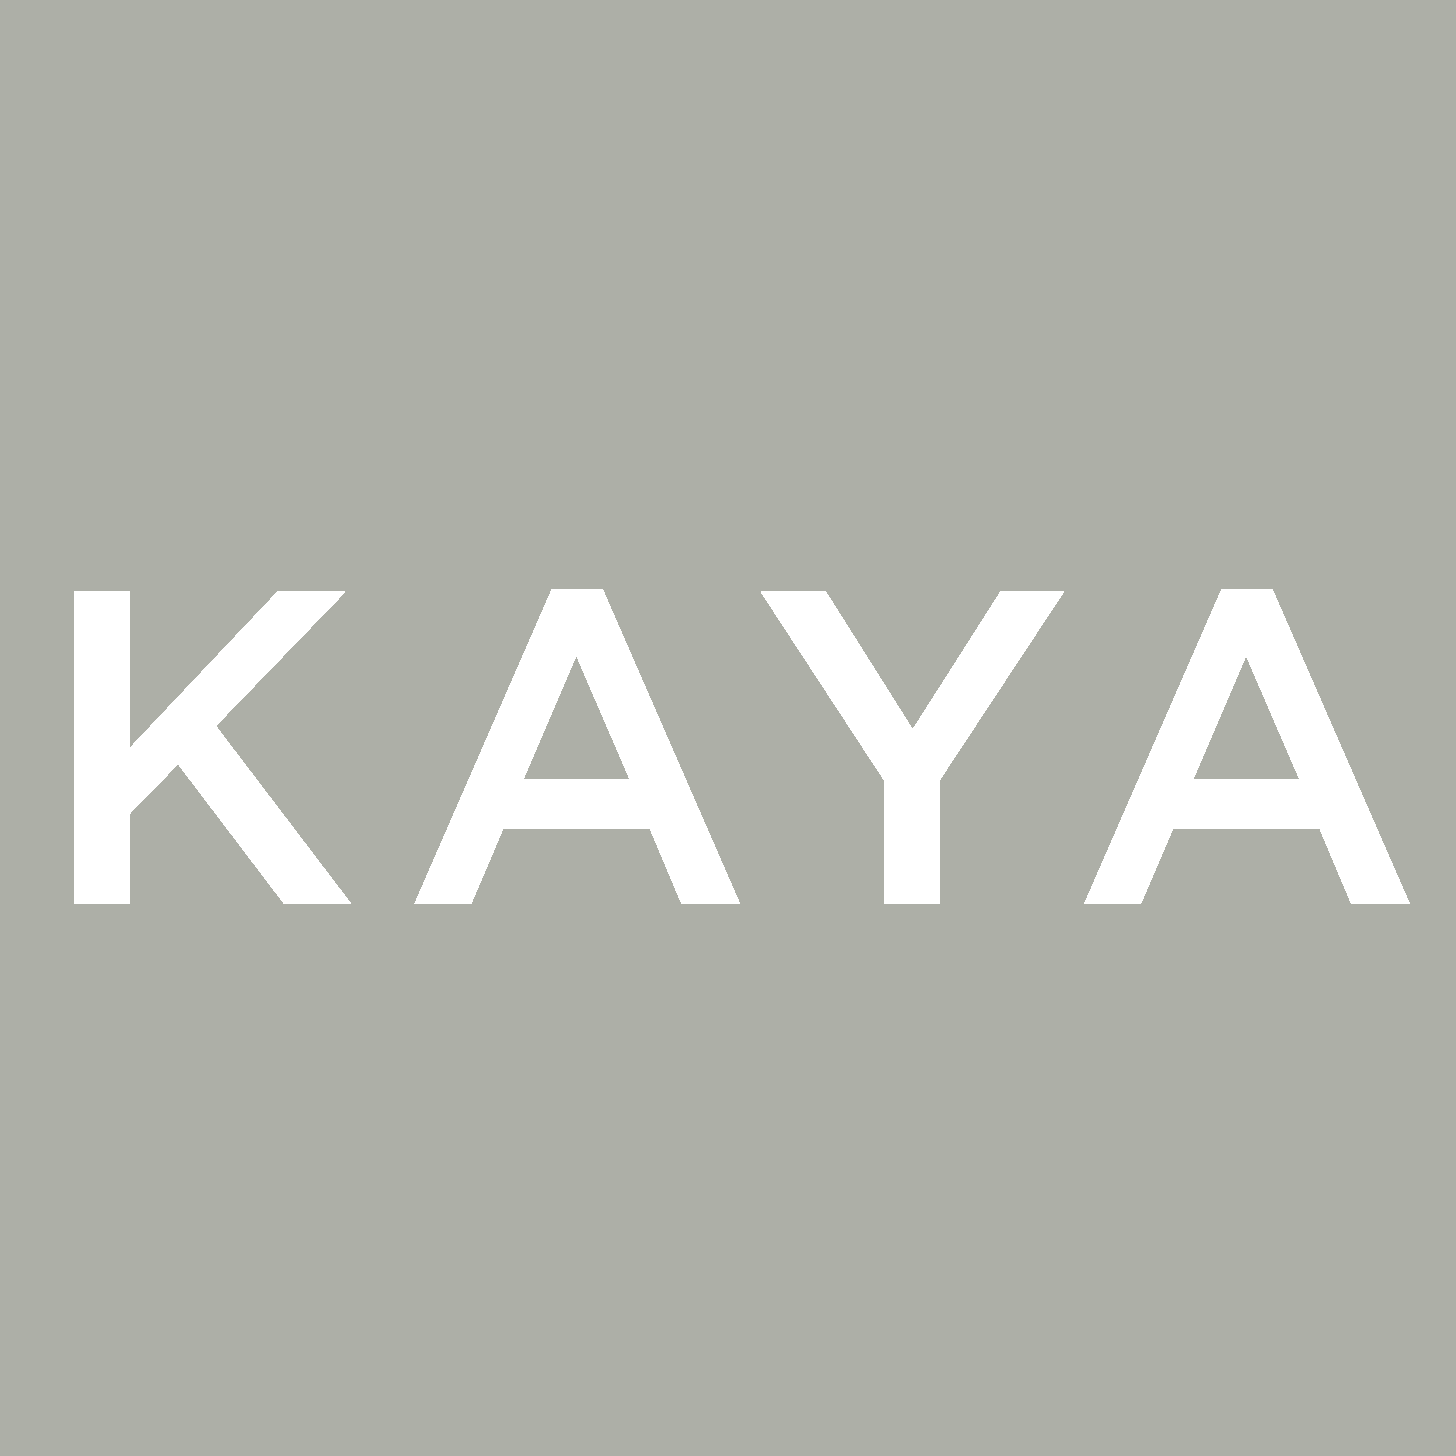 Kaya Hemp Co.